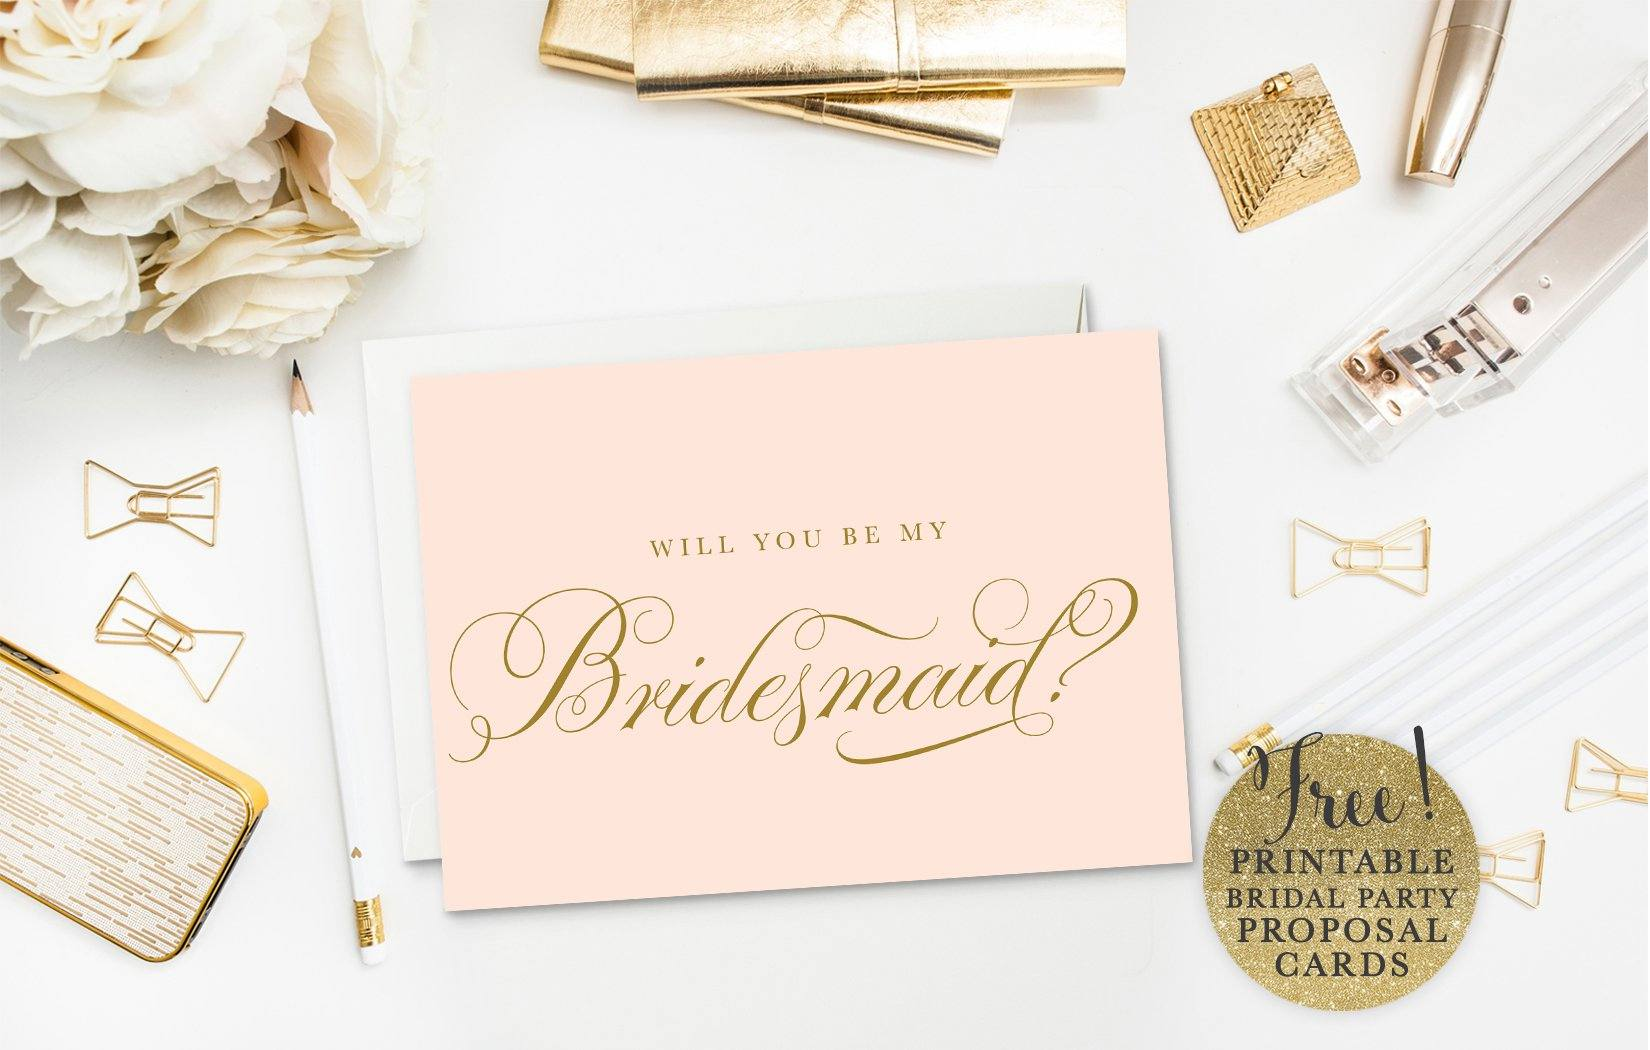 A pink bridal party proposal card.